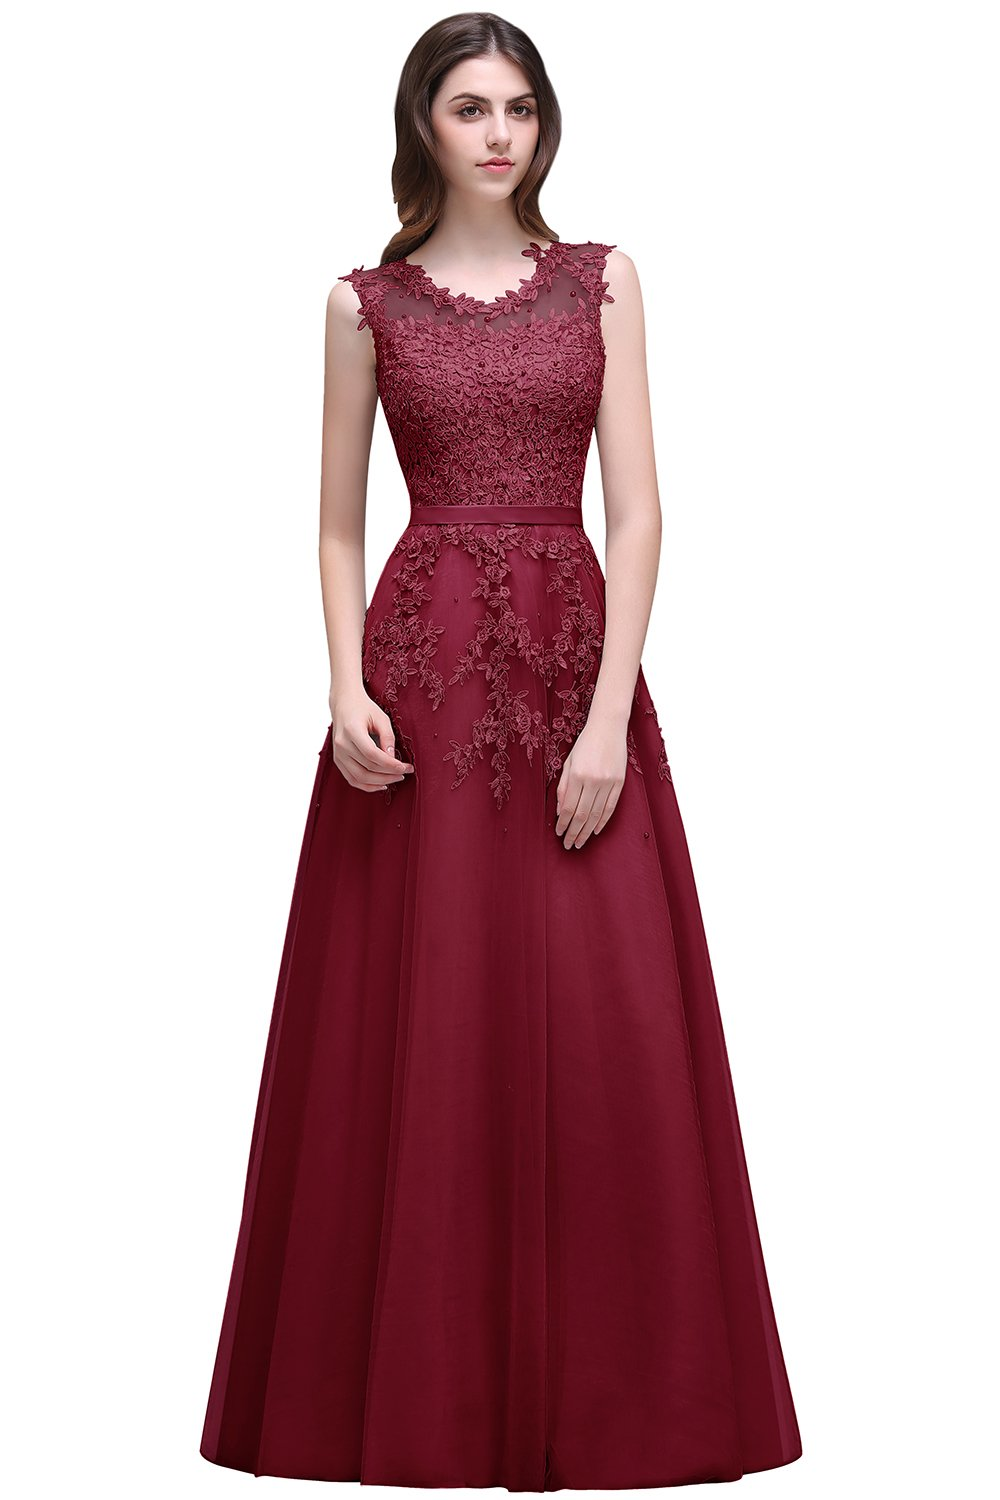 Burgundy Prom Dress 2016 Lace Appliques Long Evening Dresses for Weddings